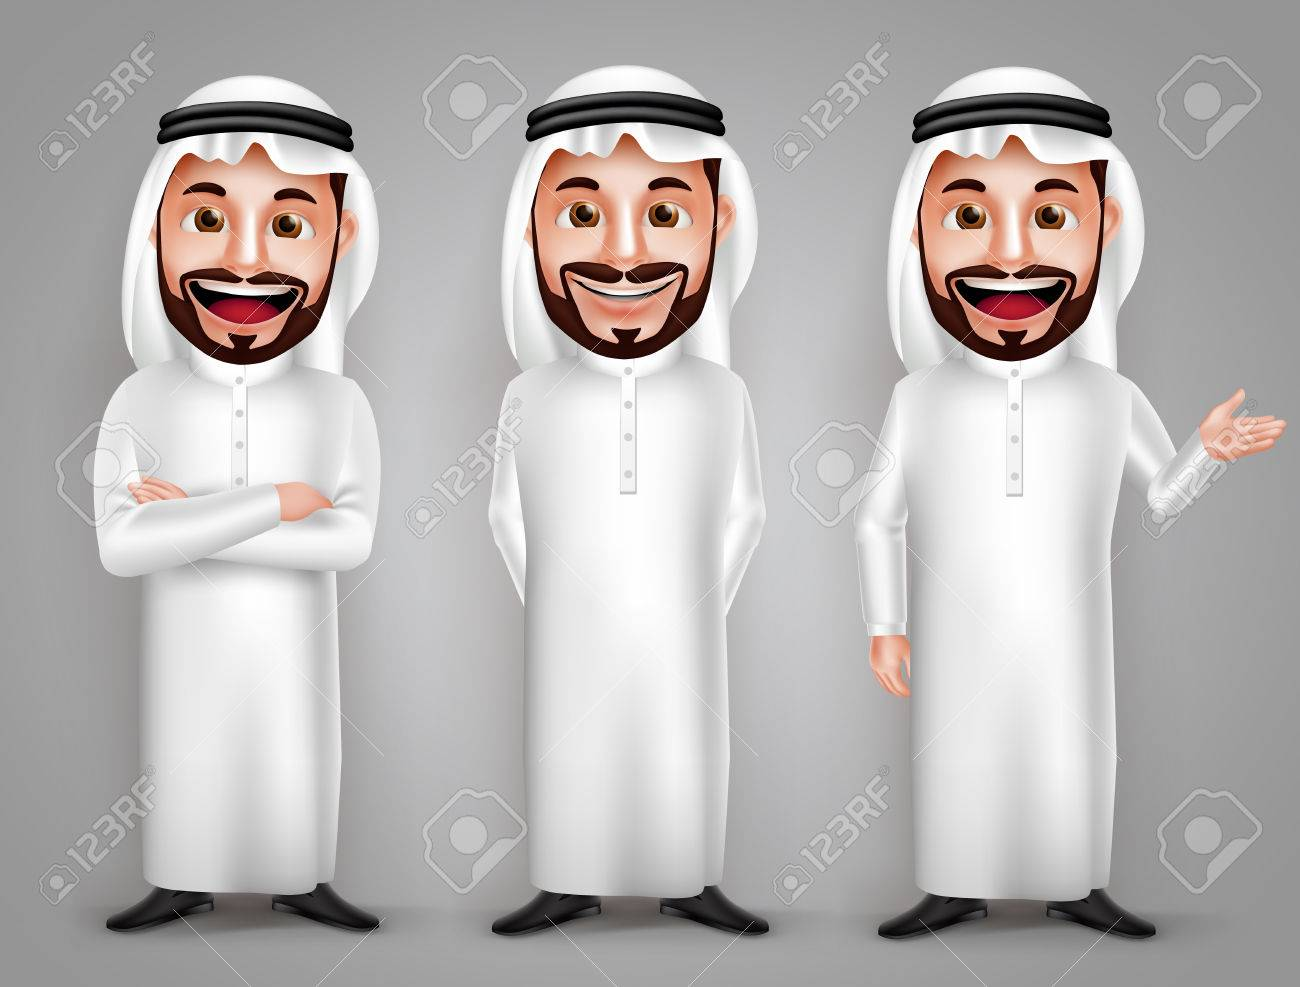 Saudi arab man vector character set with different friendly gesture and professional pose for business purpose. Vector illustration. - 60507547